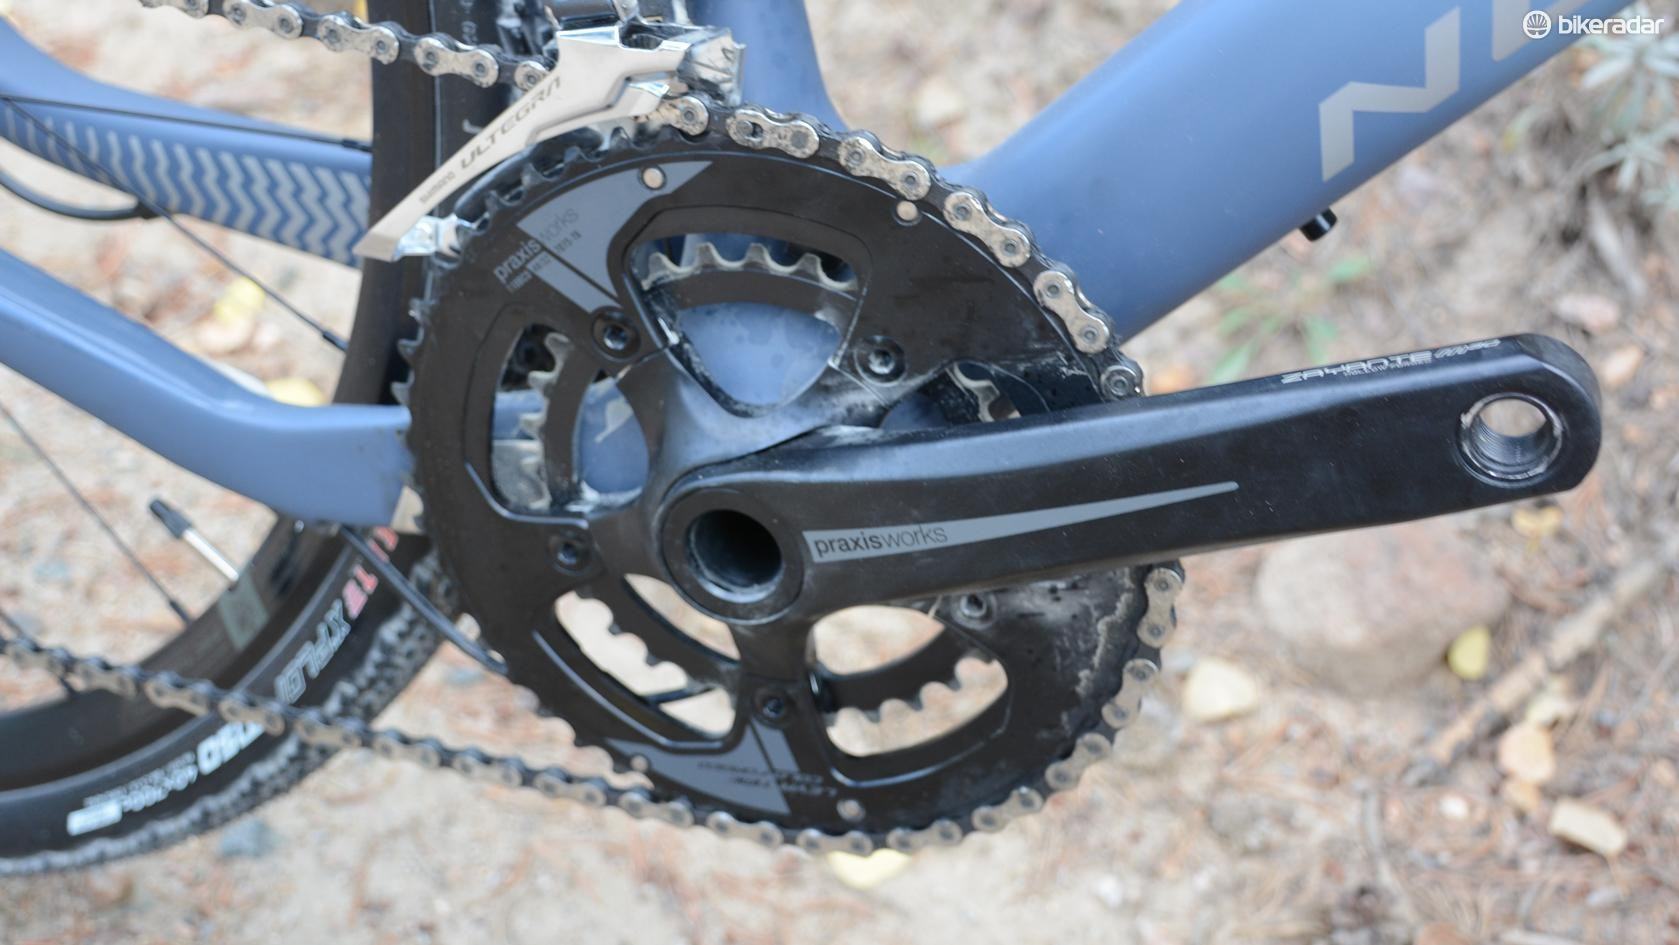 The Praxis Zayante crank pulls 48/32t chainrings, which provides a welcome gear range for gravel exploring